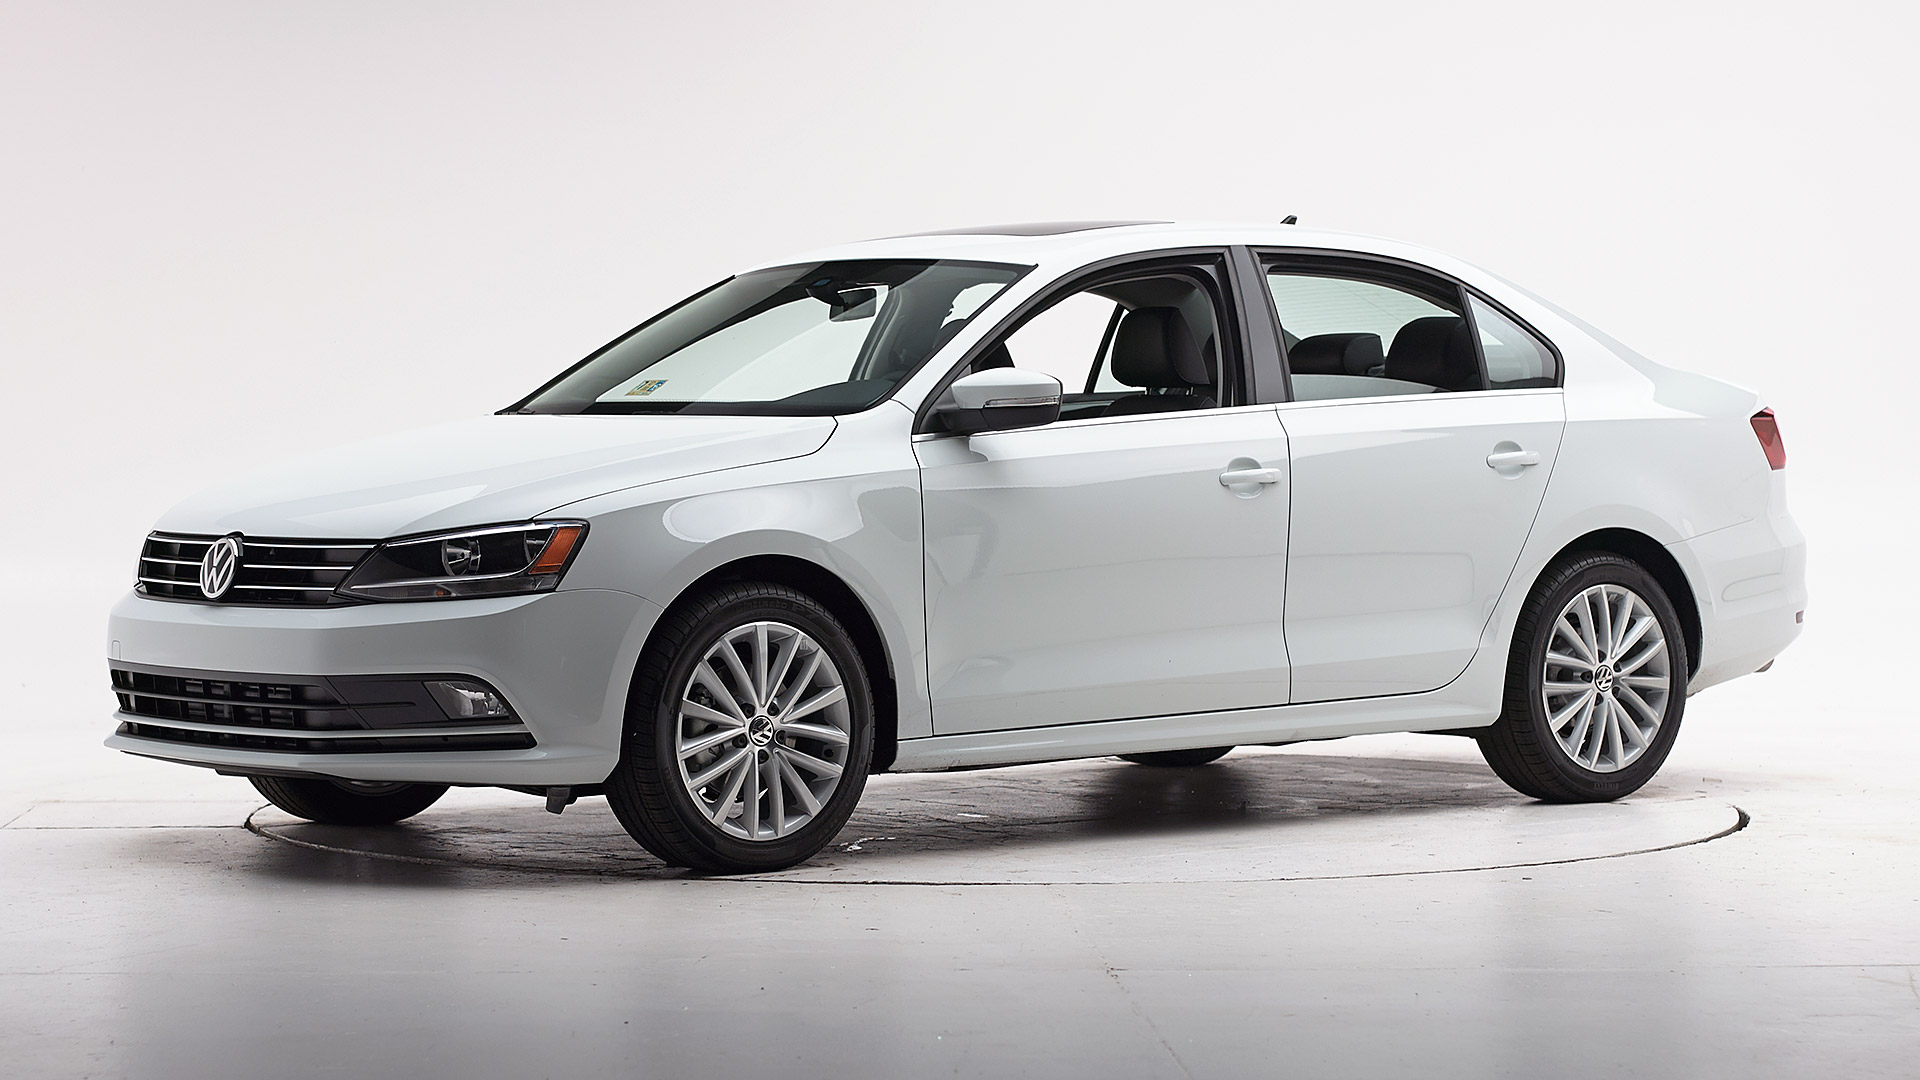 2016 Volkswagen Jetta 4-door sedan